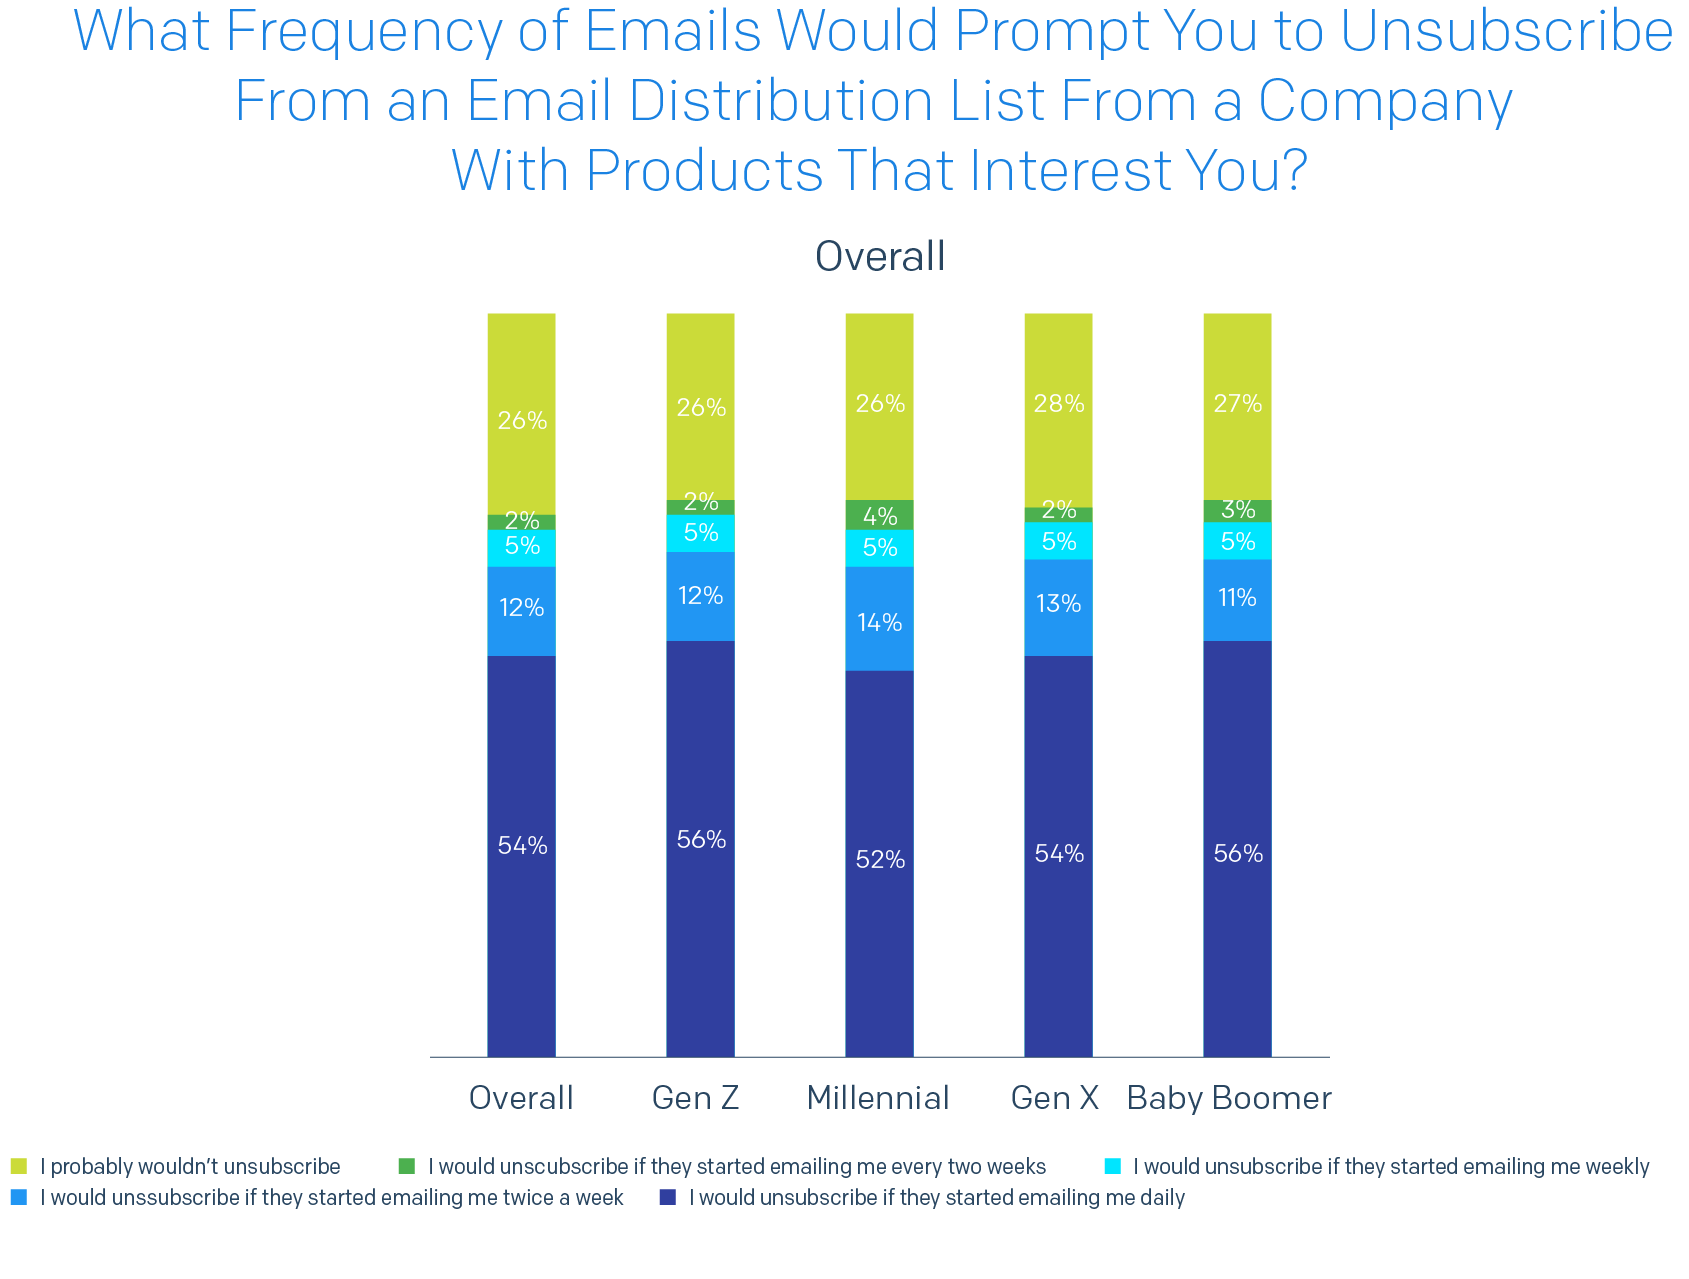 Bar chart of What frequency of emails would prompt you to unsubscribe from an email distribution list from a company with products that interest you?